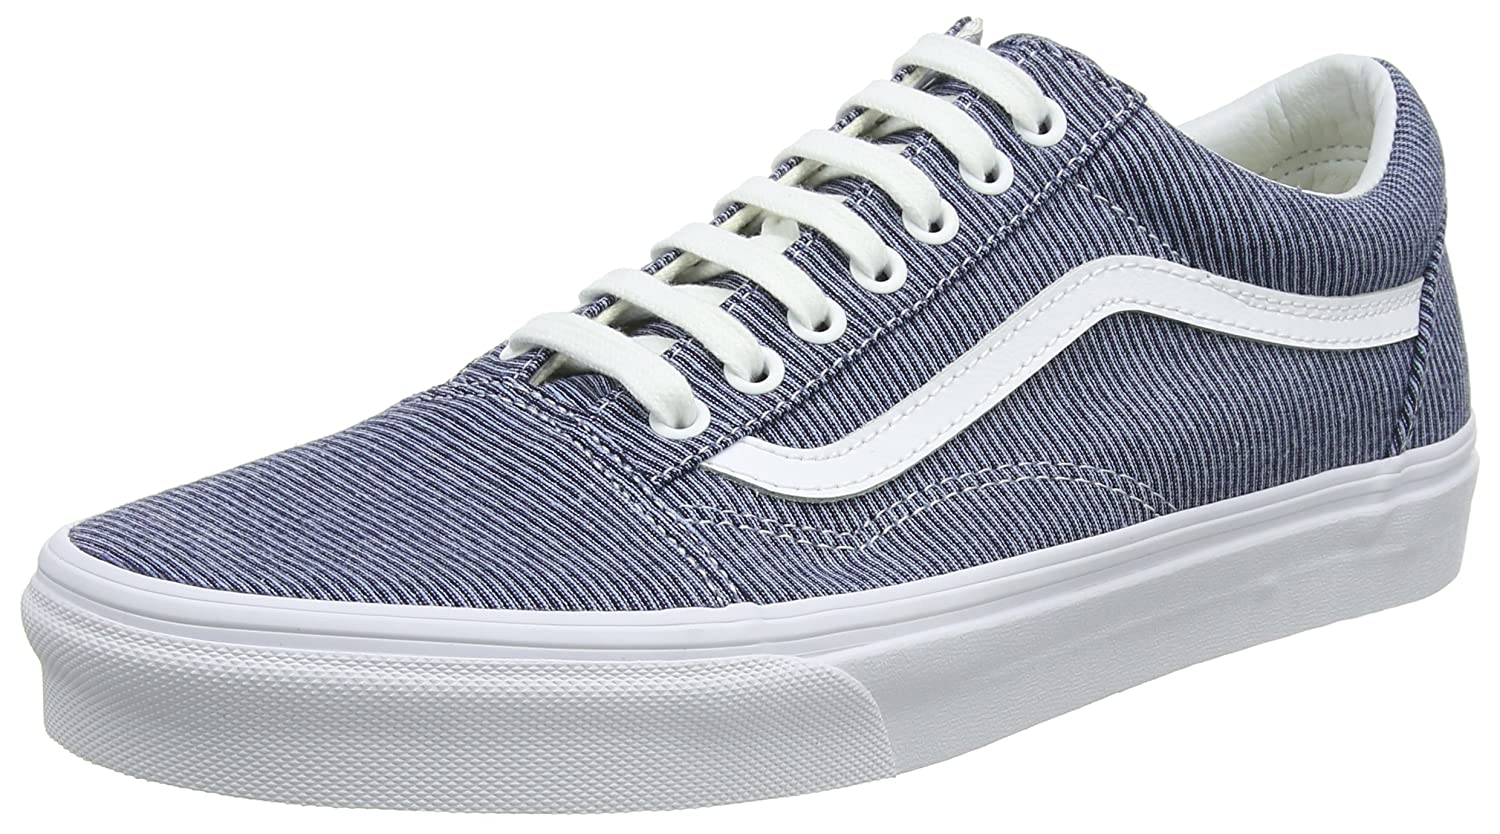 Vans Unisex Old Skool Classic Skate Shoes B076CRS11L 5.5 D(M) US / 7 B(M) US|Blue/True White